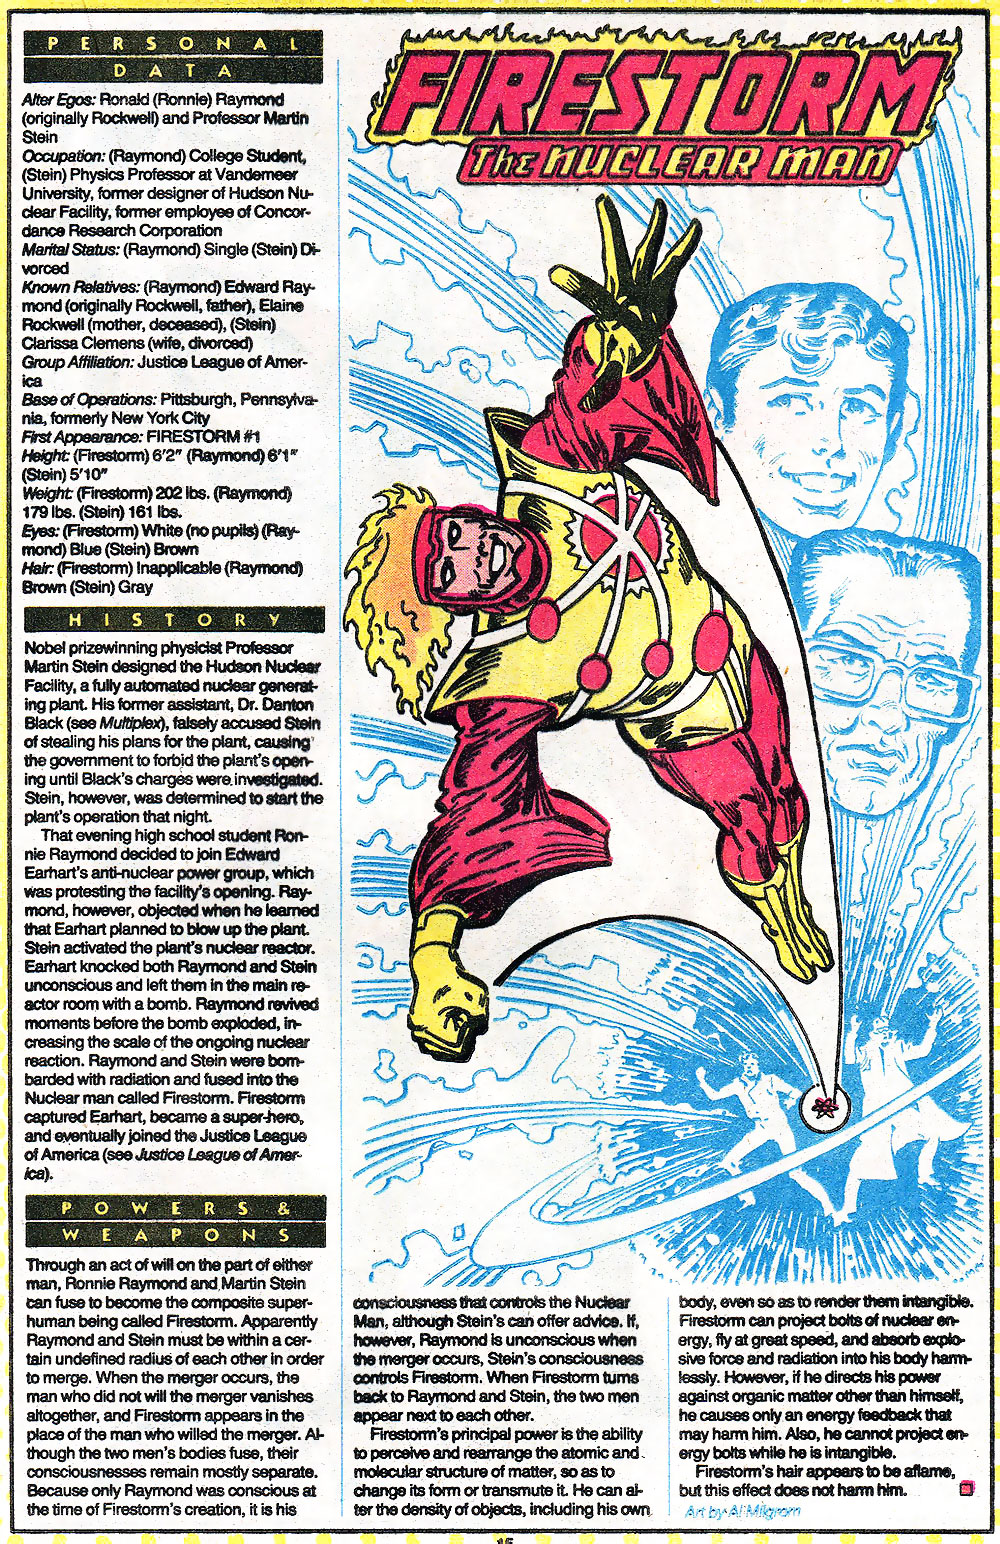 Firestorm from Who's Who - 1985